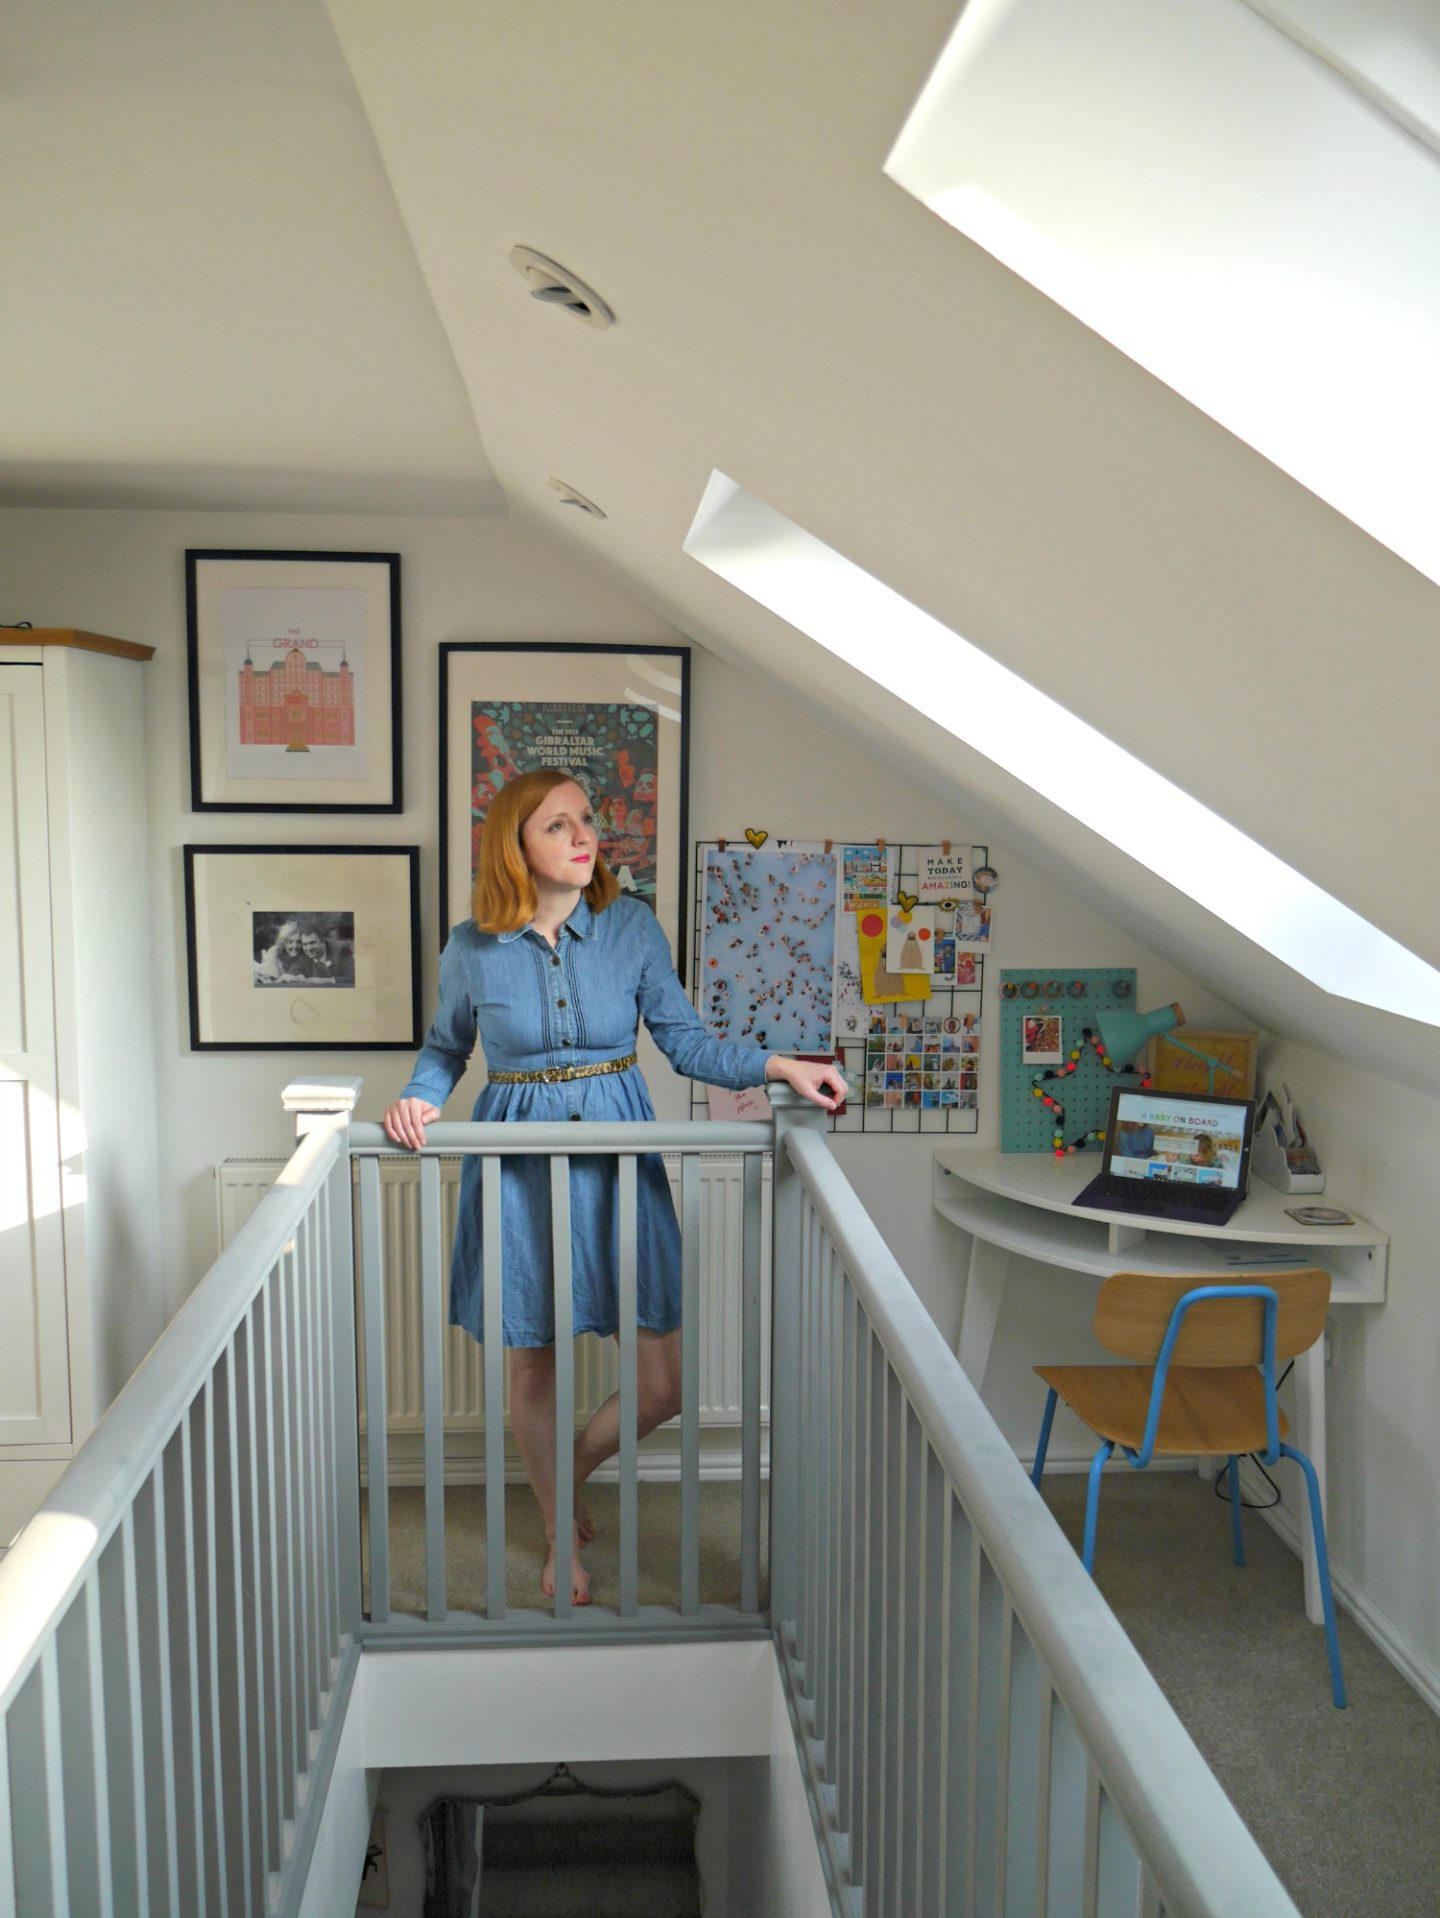 Loft conversion ideas - tips for a VELUX loft conversion in a London Victorian terrace house including the loft conversion cost